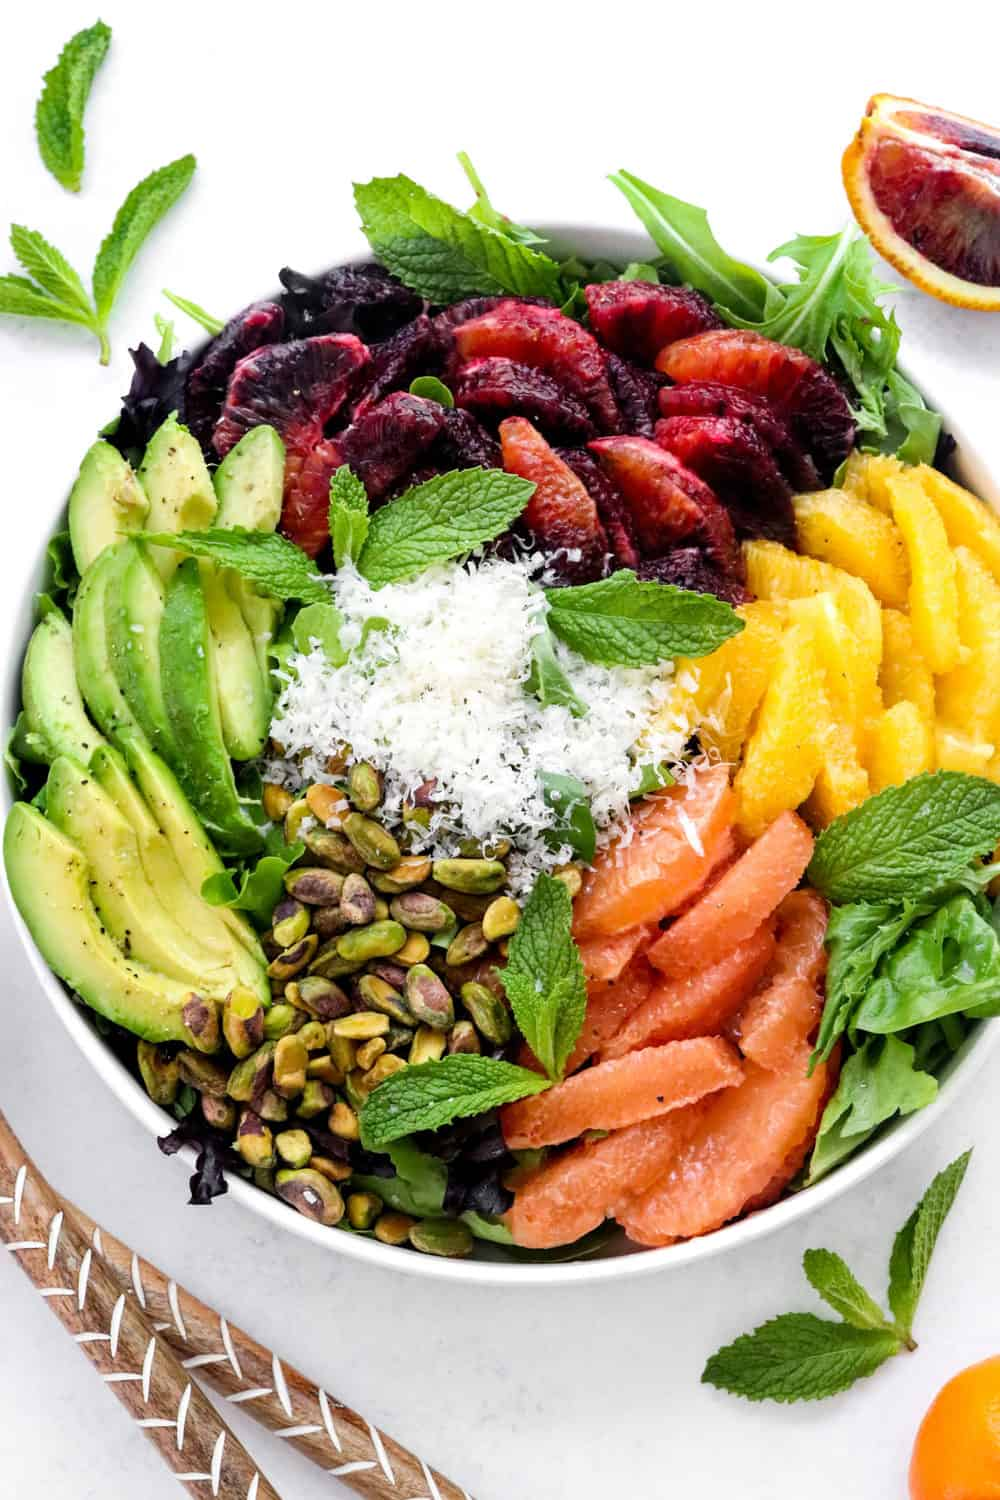 round plater filling with mixed greens topped with segmented oranges and grapefruit, sliced avocado, shredded cheese and pistachios.